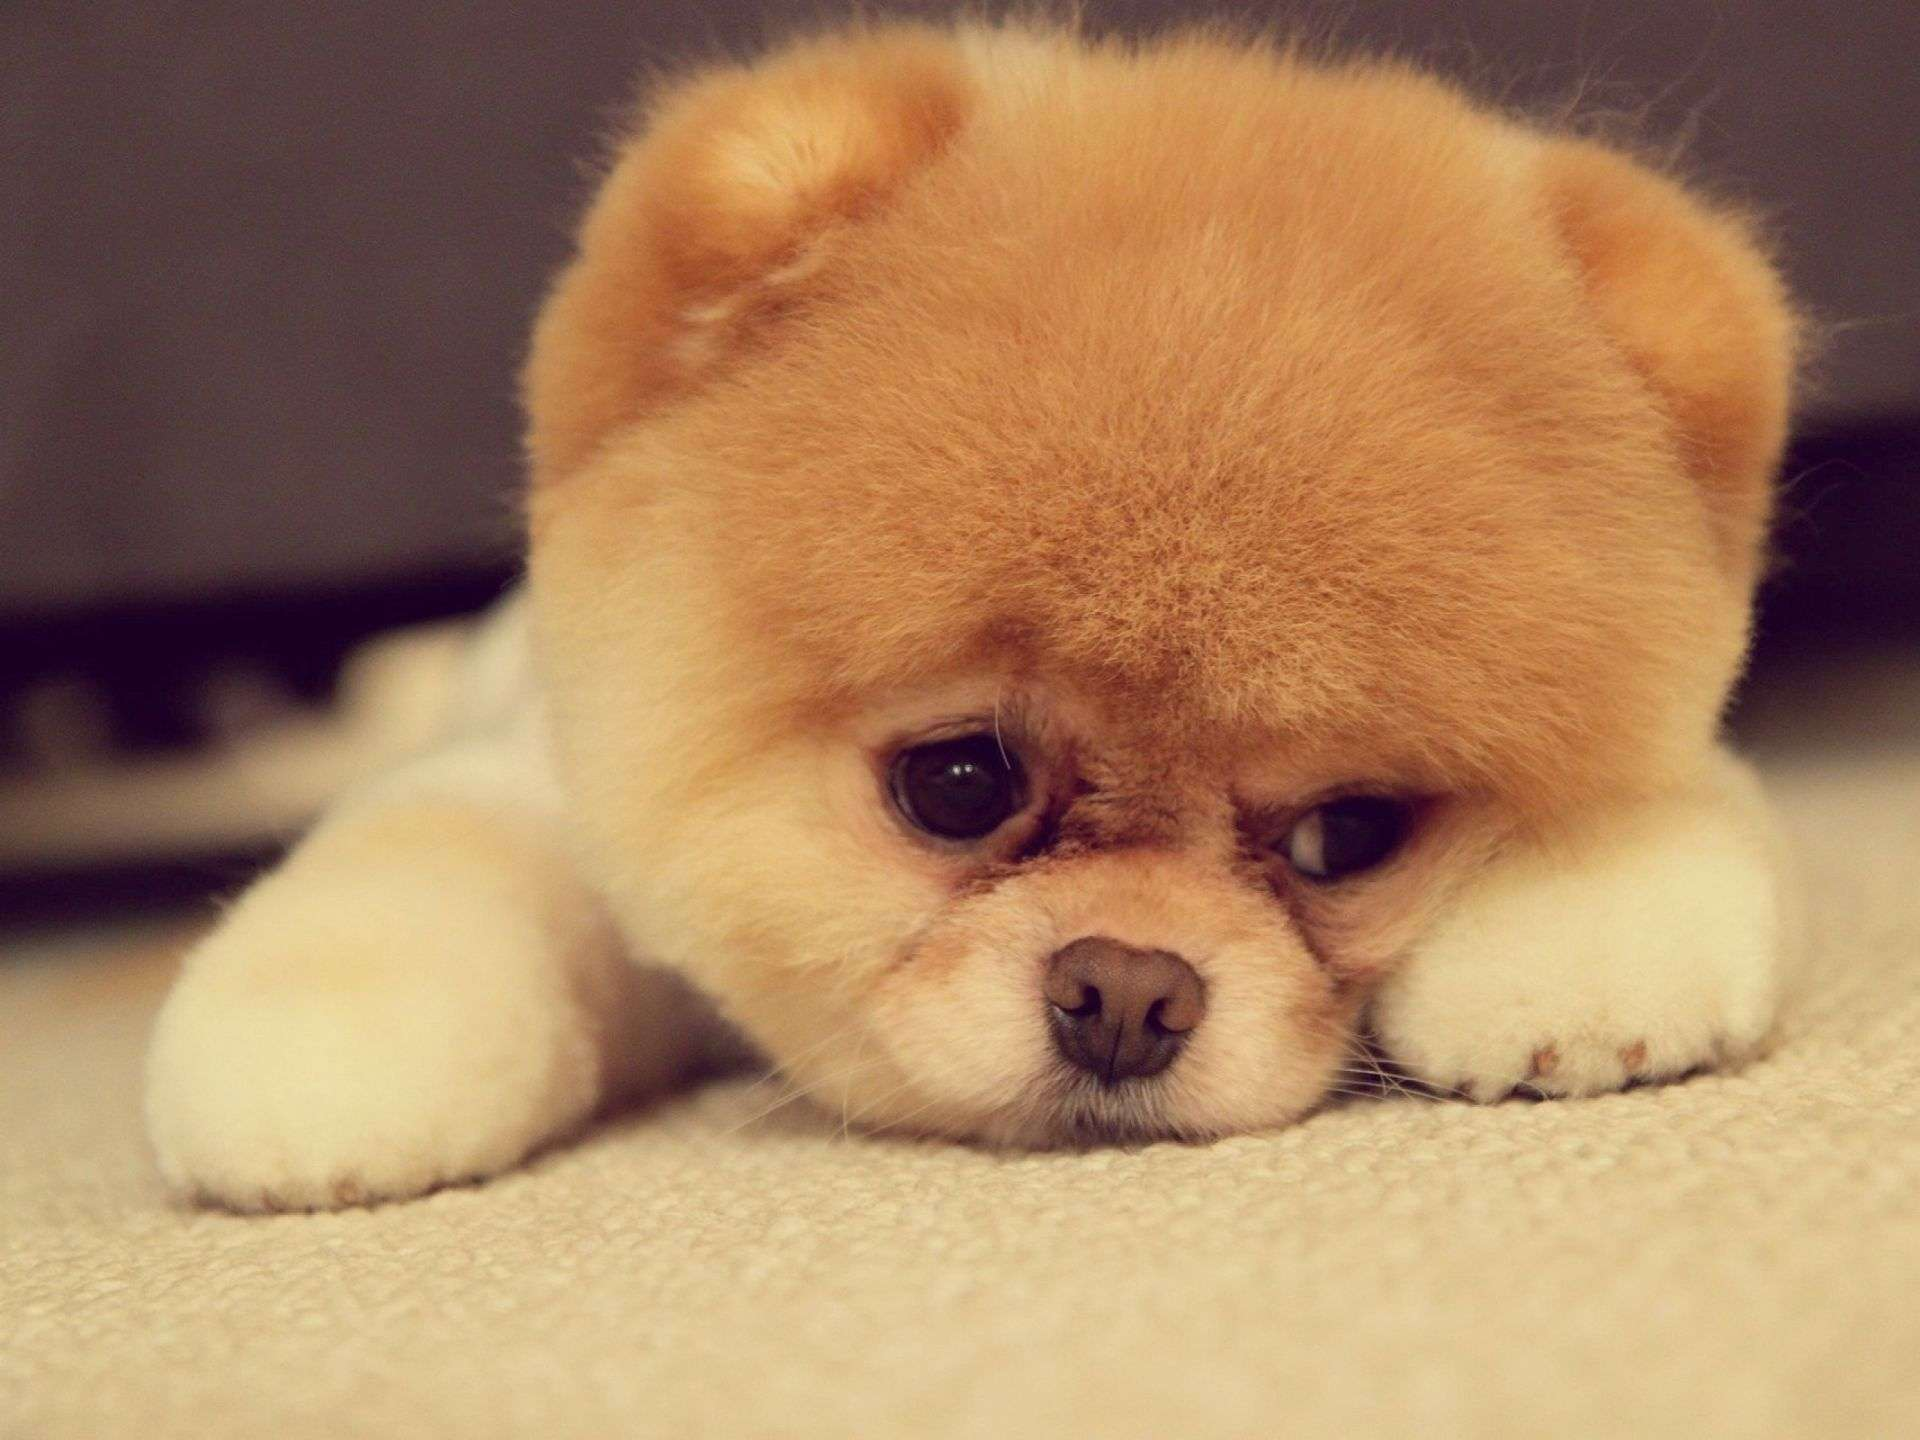 Sad Puppy Face Wallpapers HD Widescreen